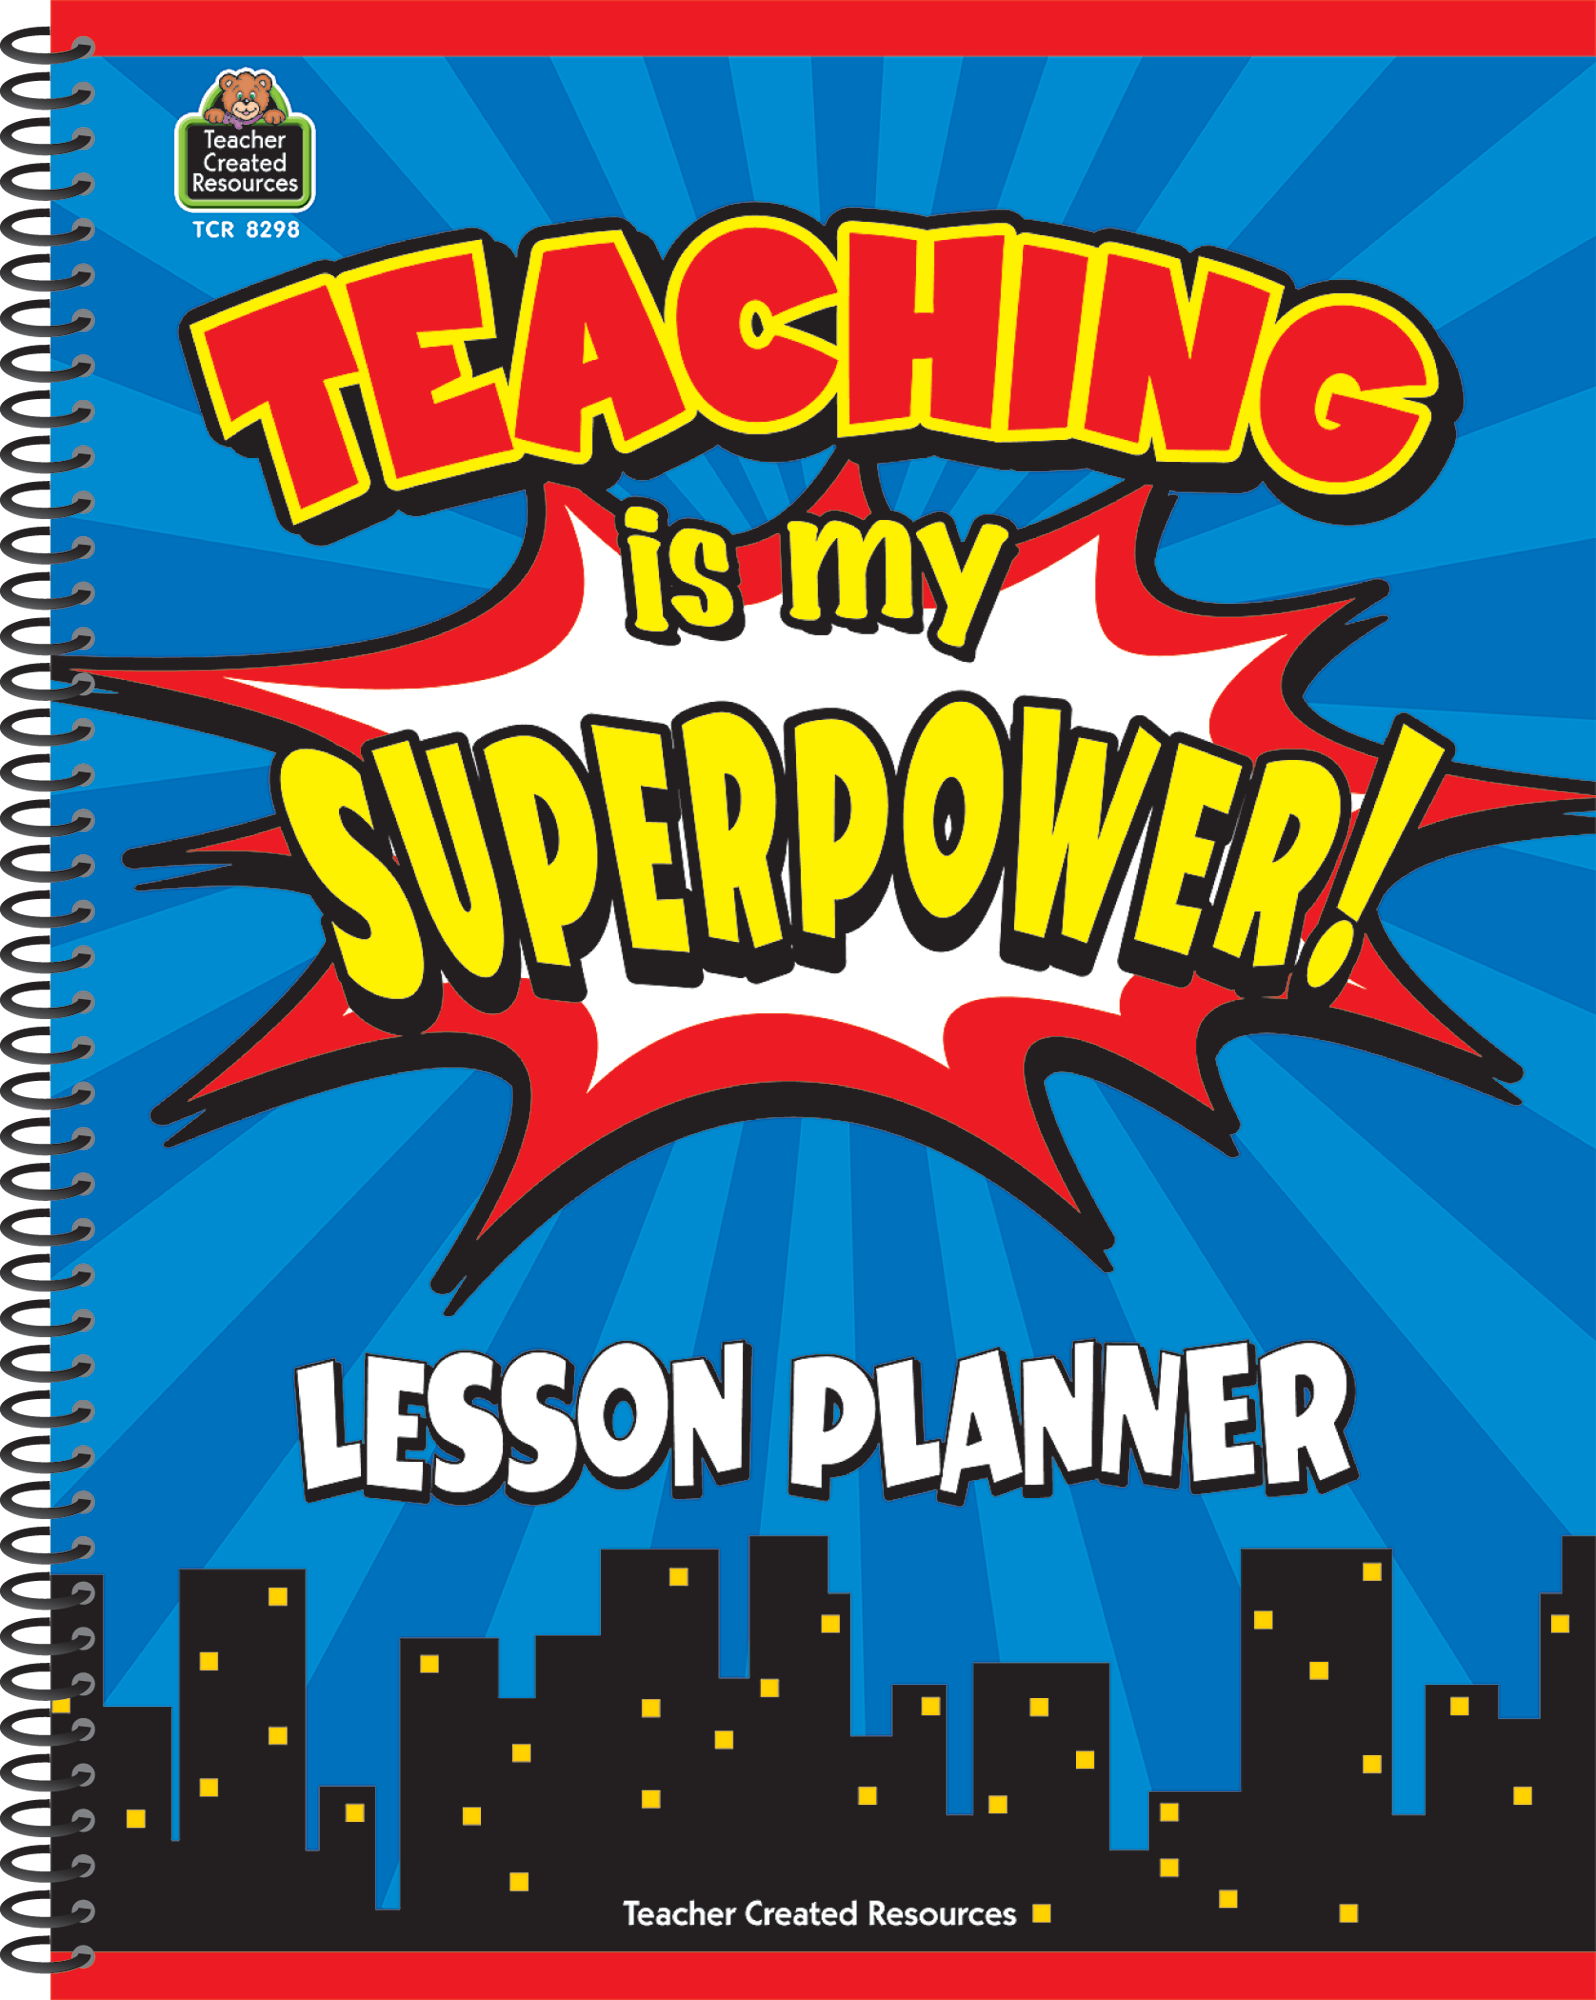 teaching is my superpower lesson planner tcr8298 teacher created